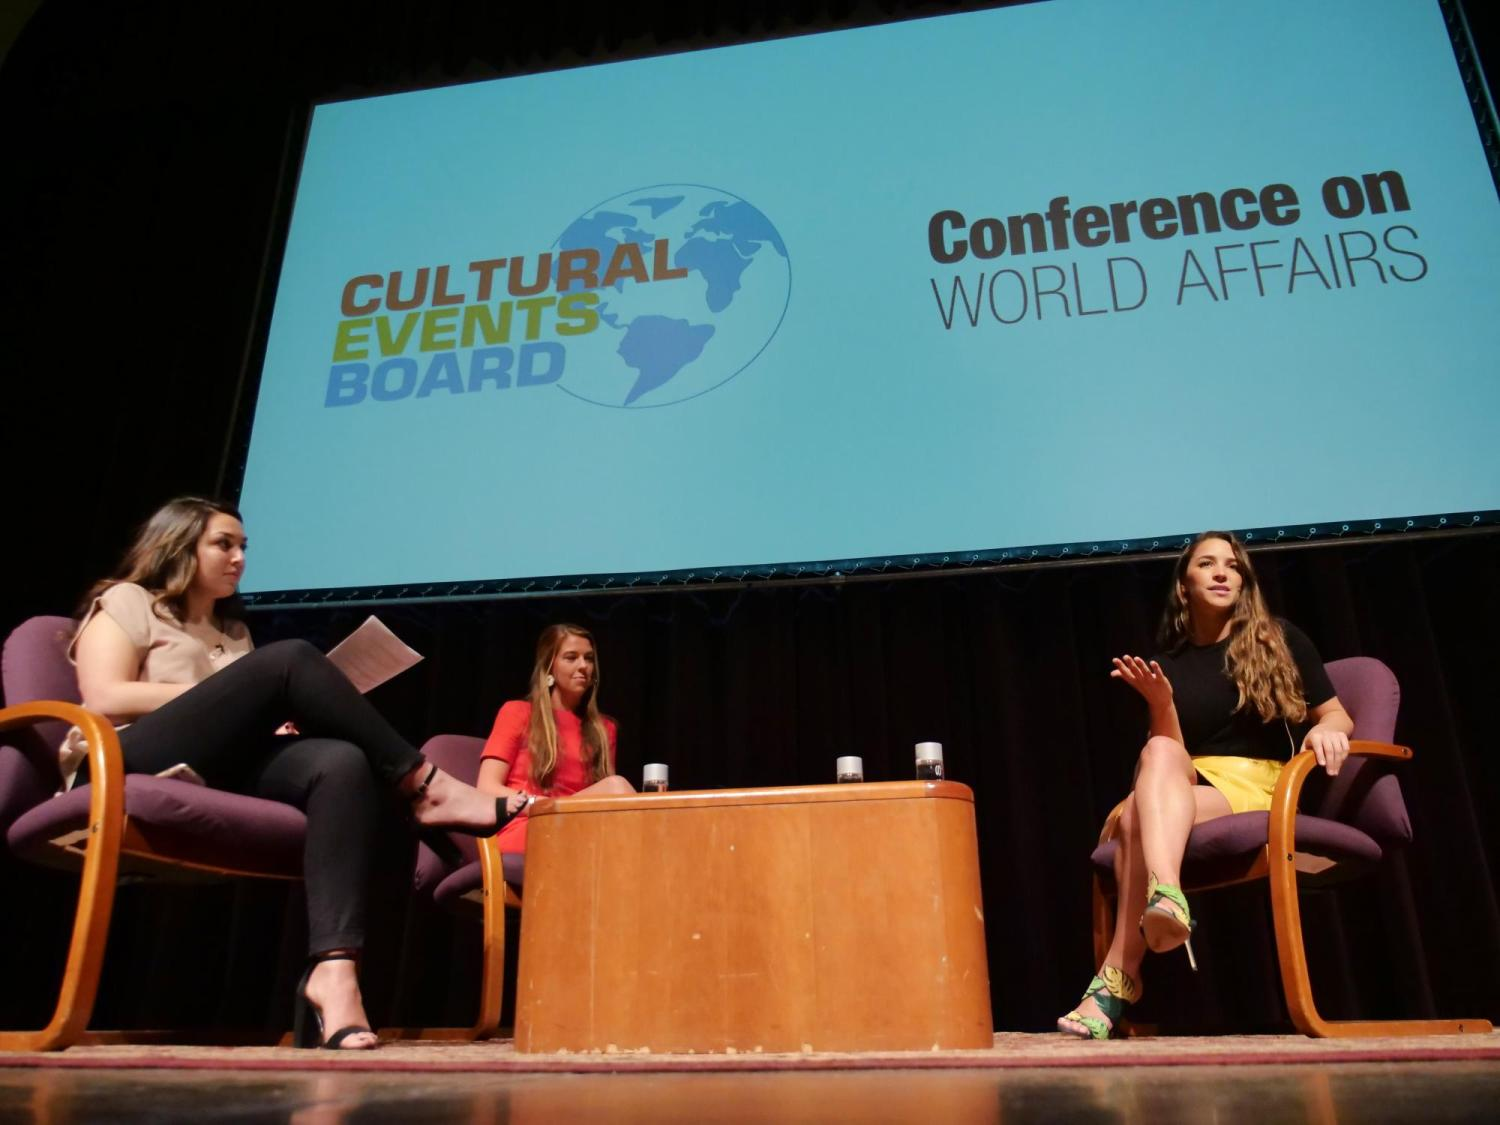 Aly Raisman on stage at Conference on World Affairs